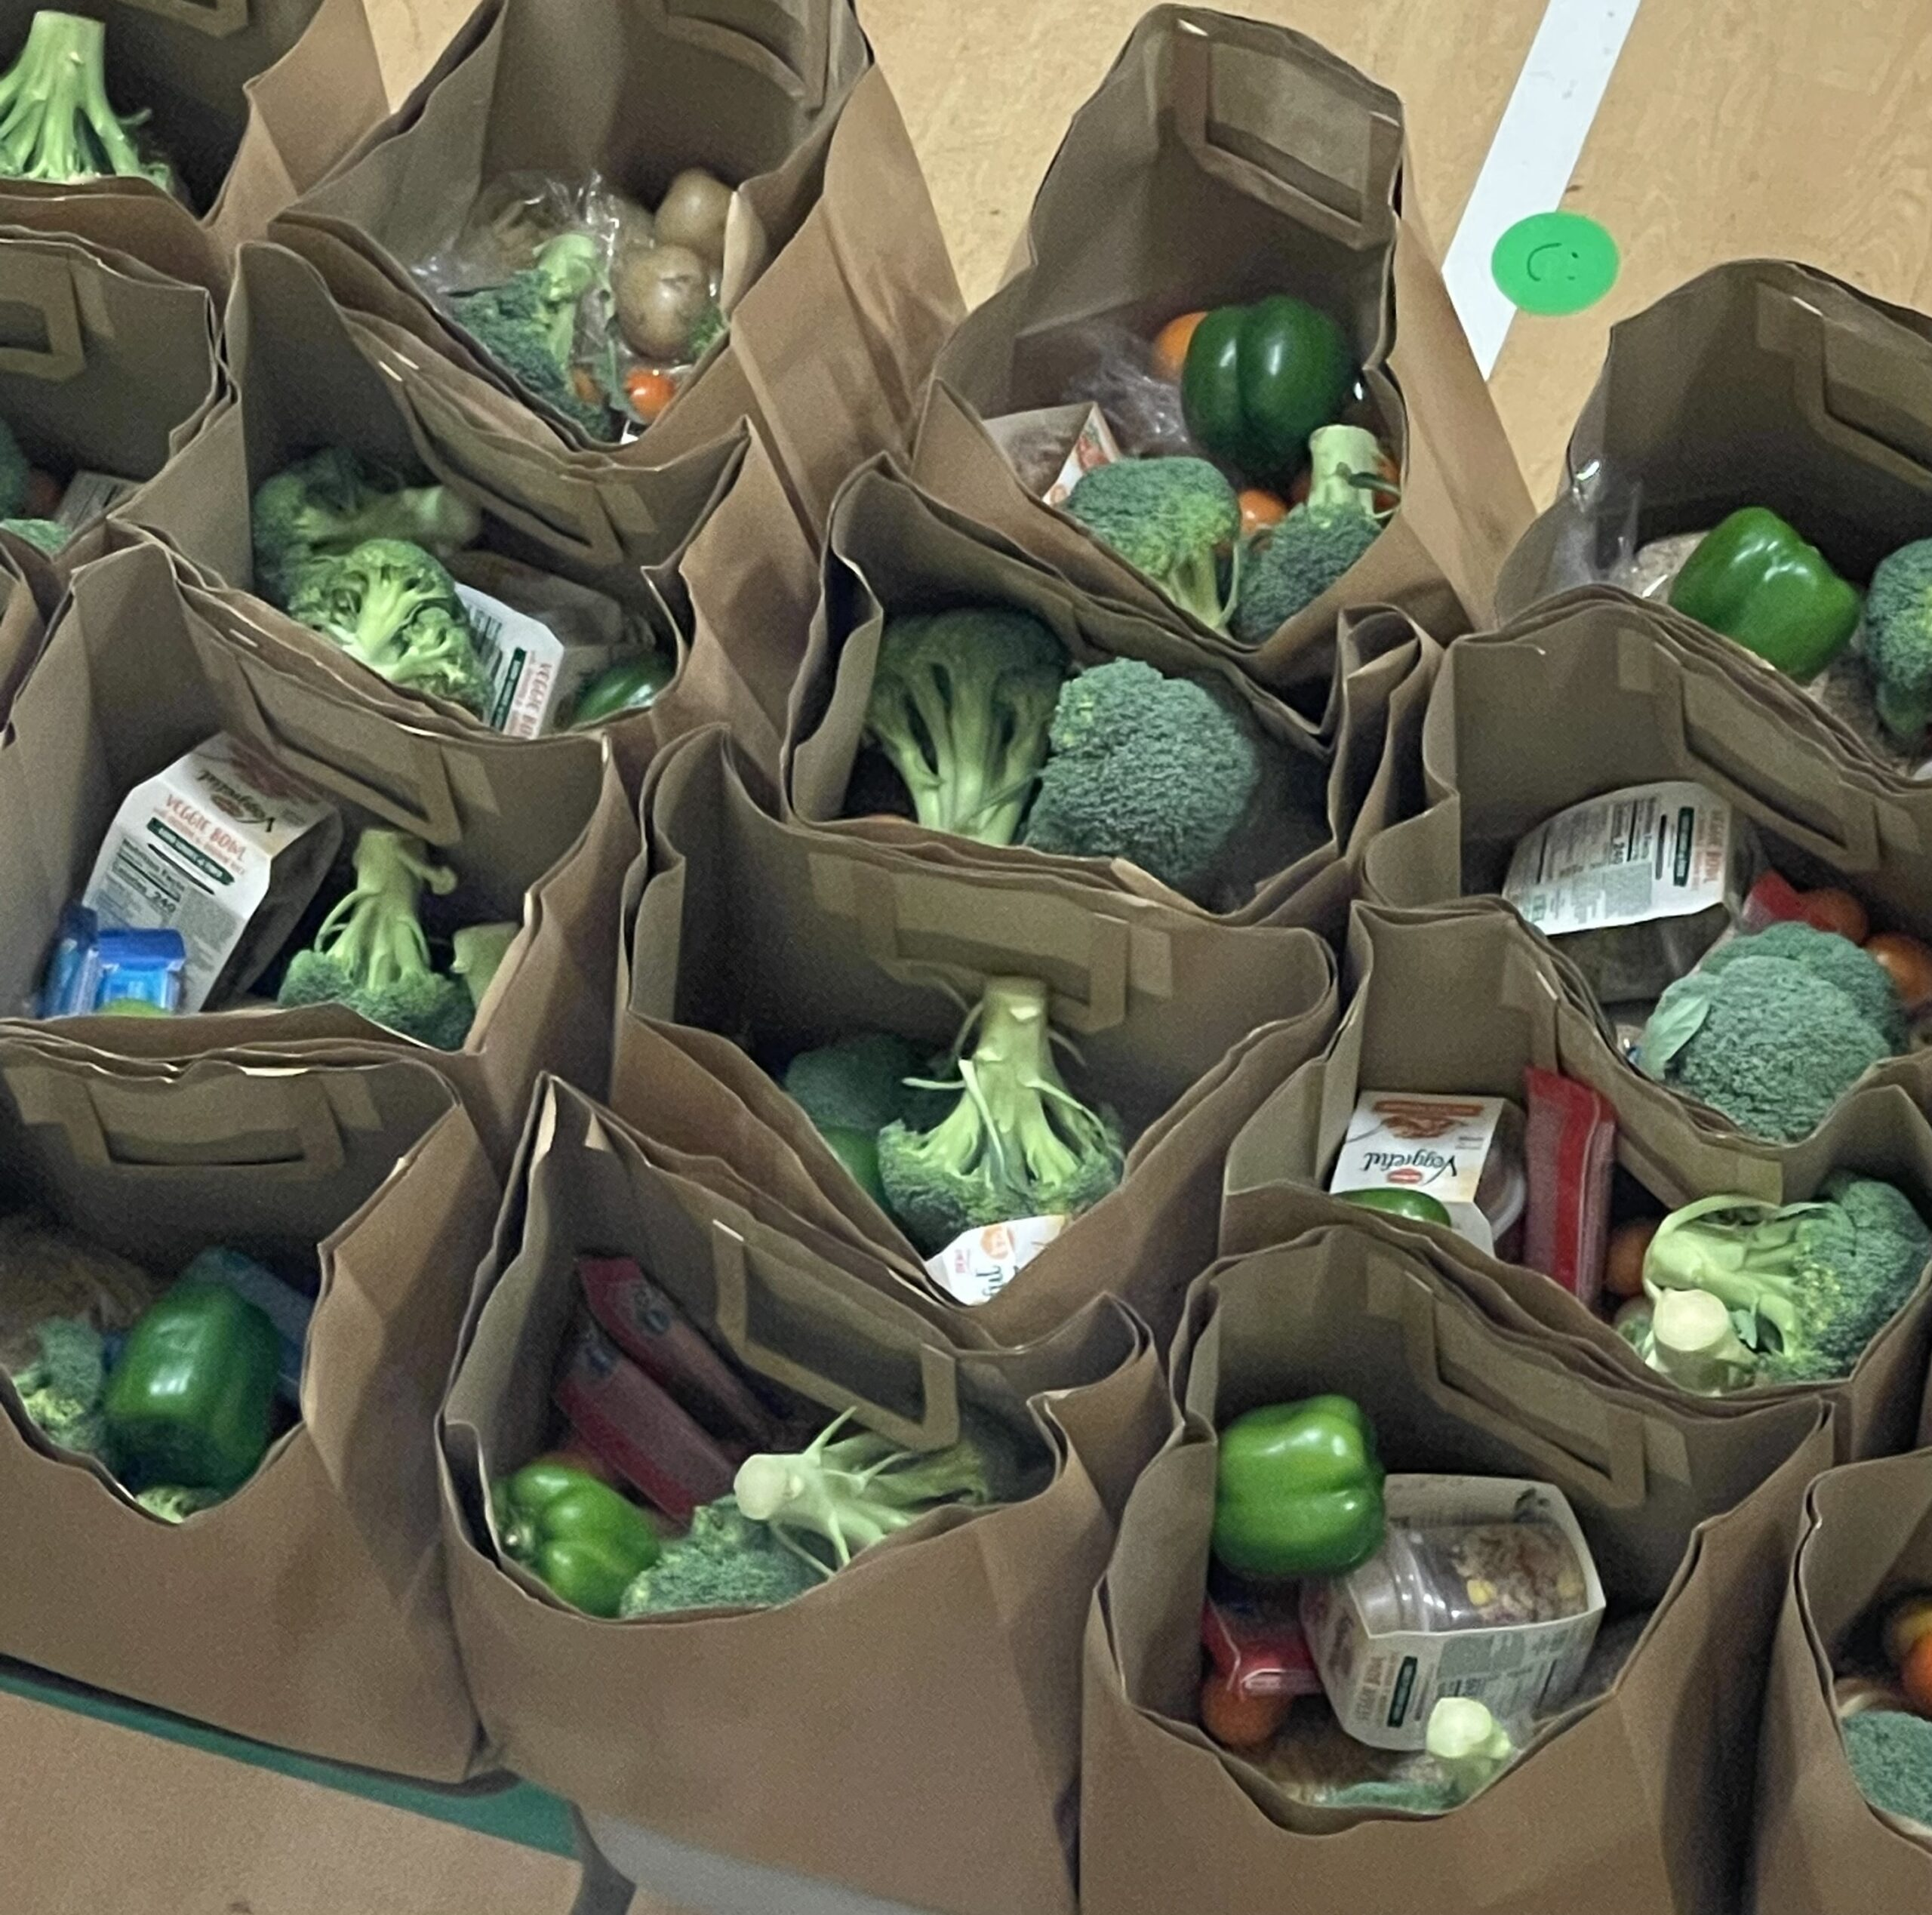 Grocery sacks of food prepared for giving out to those in need.